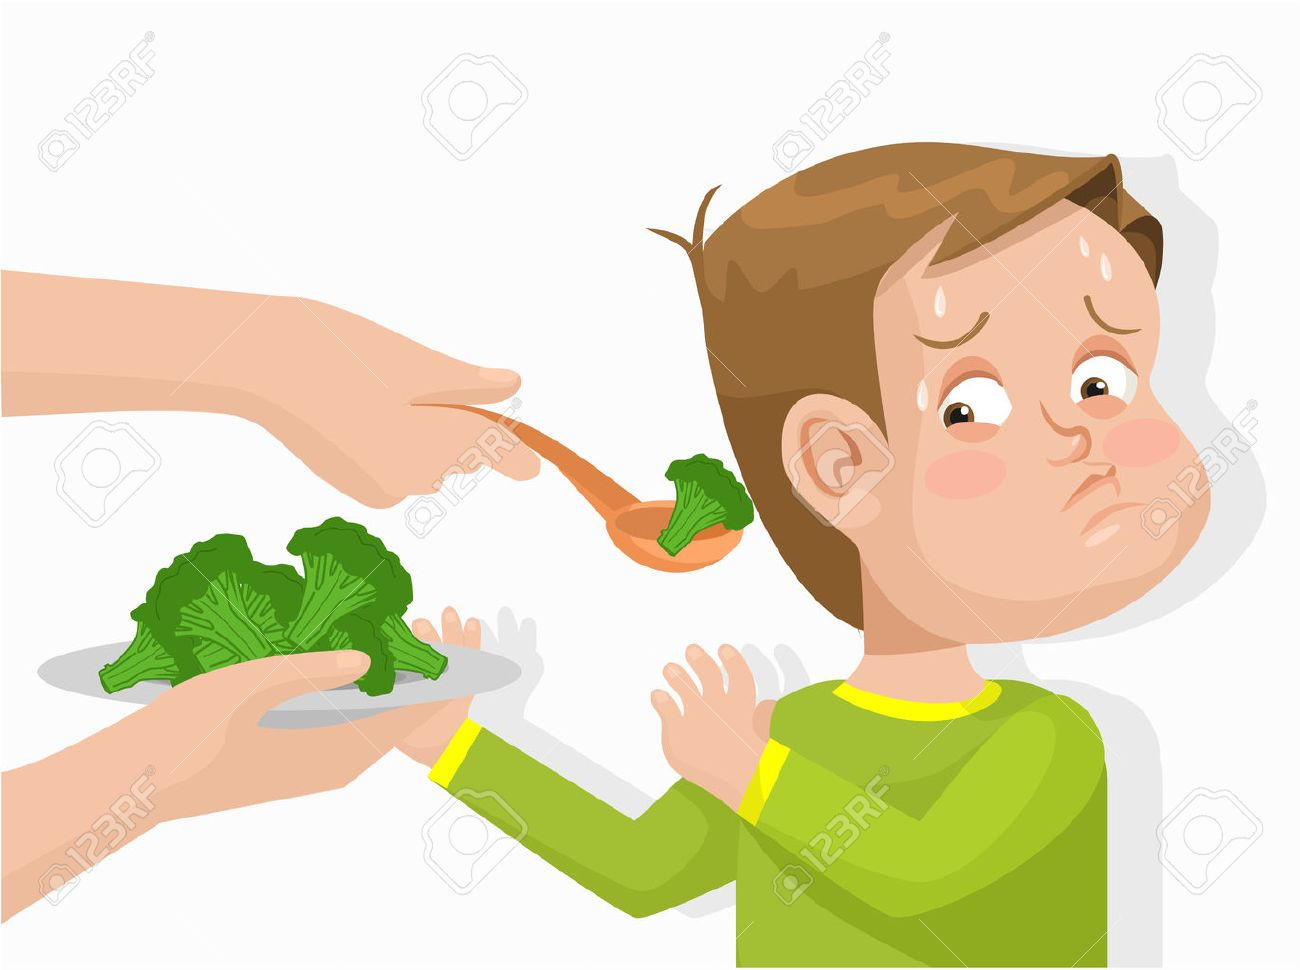 Child does not want to eat broccoli. Vector flat illustration - 42793290